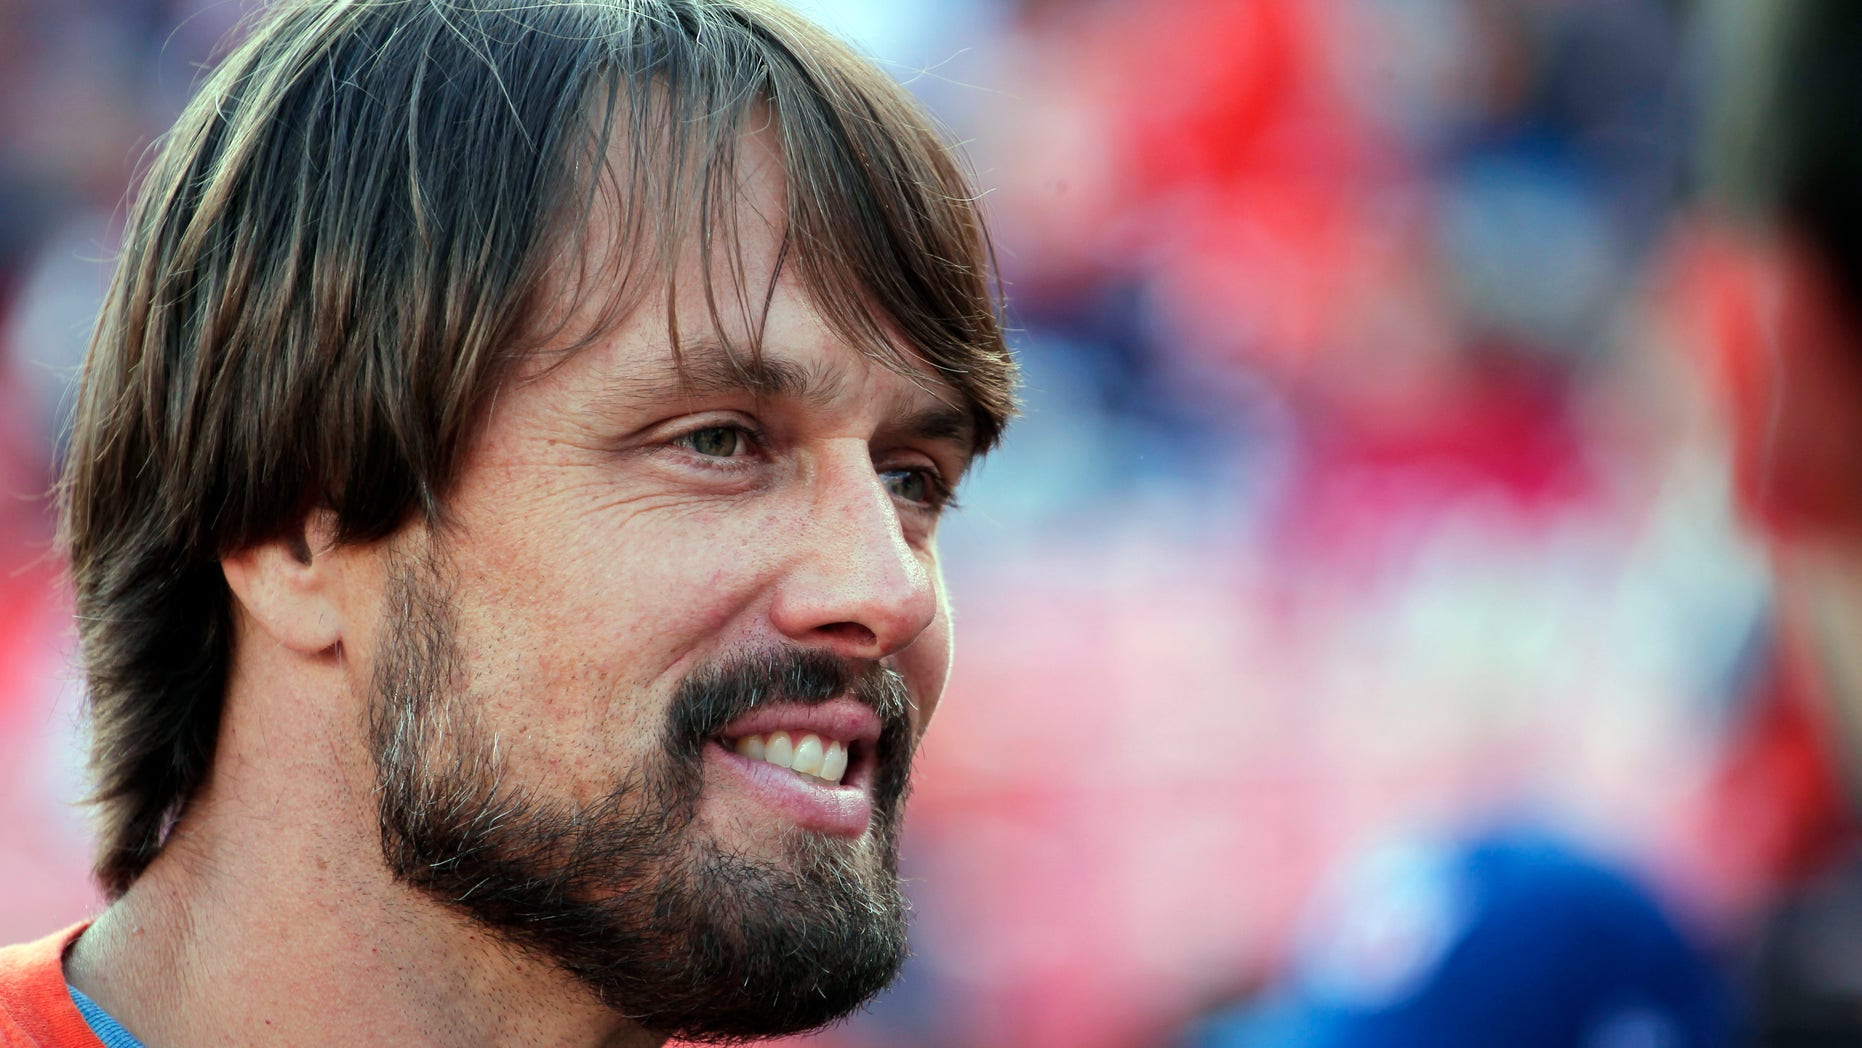 "FILE - In this Nov. 15, 2015, file photo, former Denver Broncos quarterback Jake Plummer smiles on the sidelines during an NFL football game between the Broncos and the Kansas City Chiefs in Denver. If a compound found in hemp _ and its notorious cousin, cannabis _ proves as effective in treating brain injuries as testimonials claim, it would also be welcome news for the NFL on concussions, and even better for players. Along with a handful of other retired players, Plummer felt strongly enough about the benefits to appear in a public-service campaign titled ""When the Bright Lights Fade."" (AP Photo/Jack Dempsey, File)"